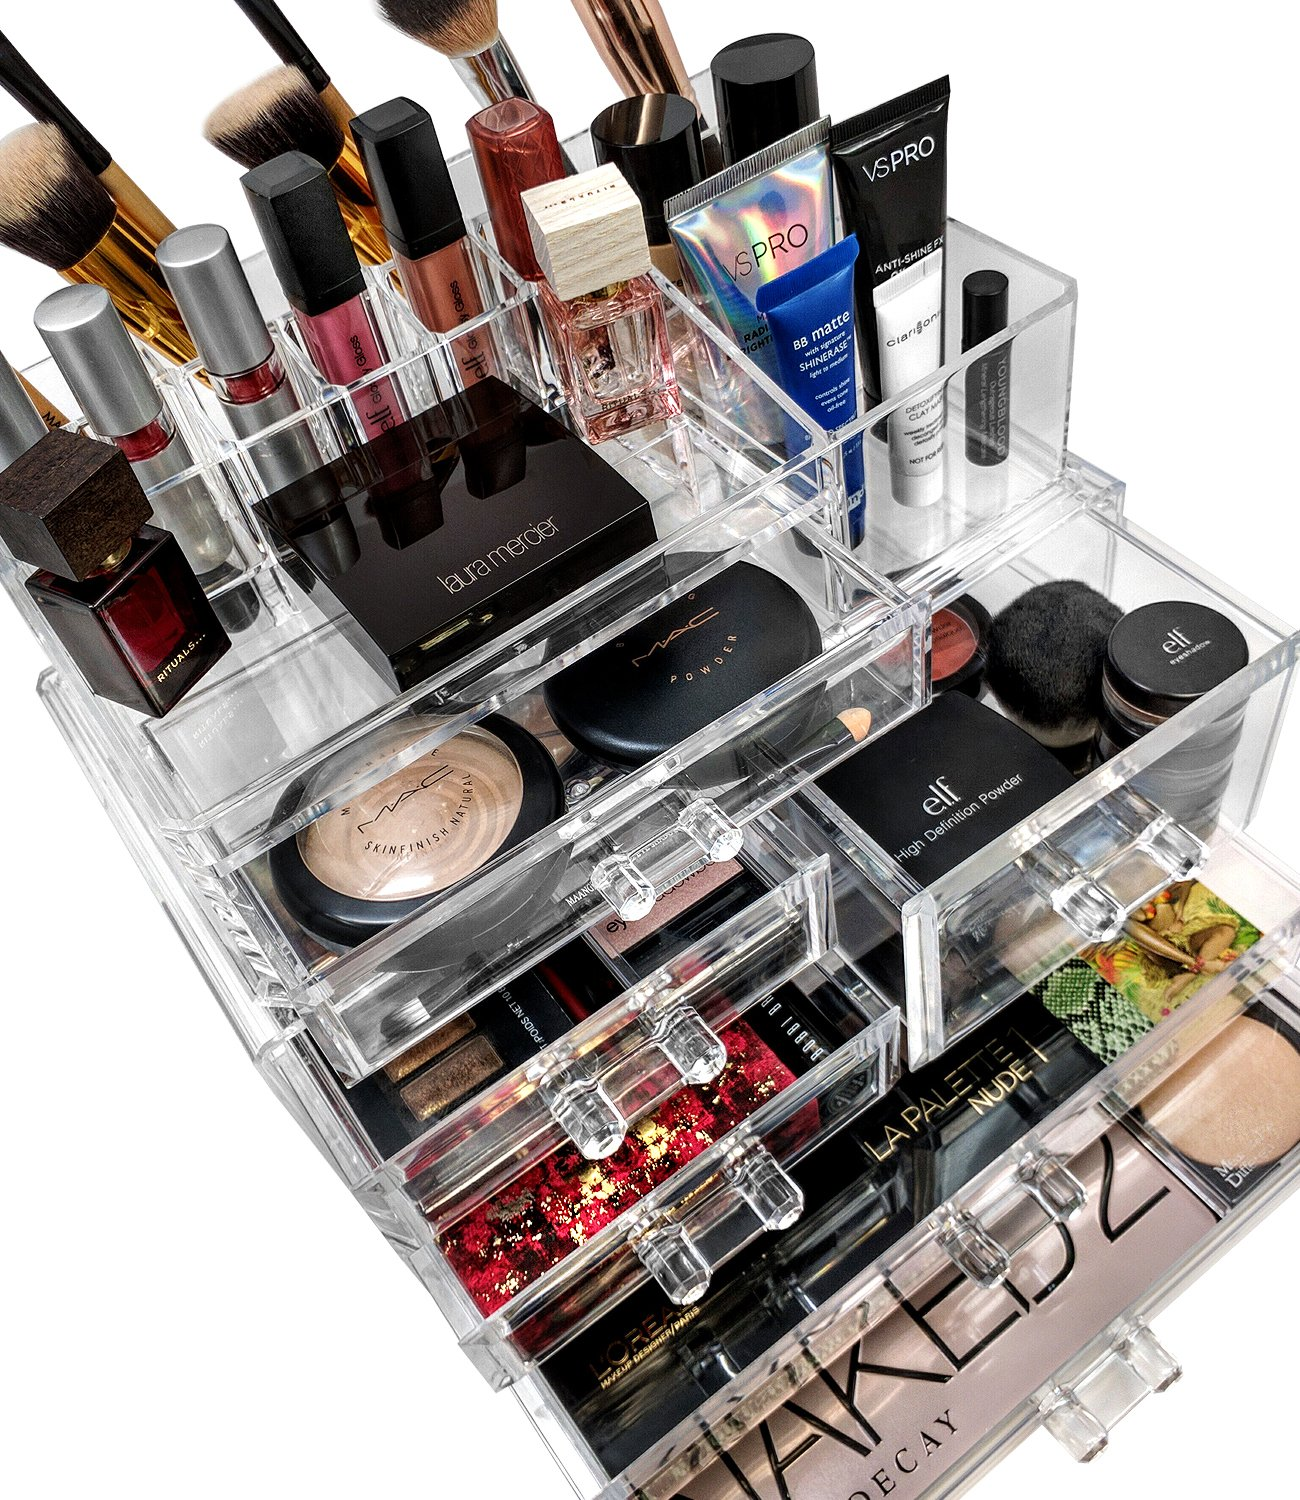 Superbe Amazon.com: Sorbus Acrylic Cosmetics Makeup And Jewelry Storage Case  Display Sets  Interlocking Drawers To Create Your Own Specially Designed  Makeup Counter ...